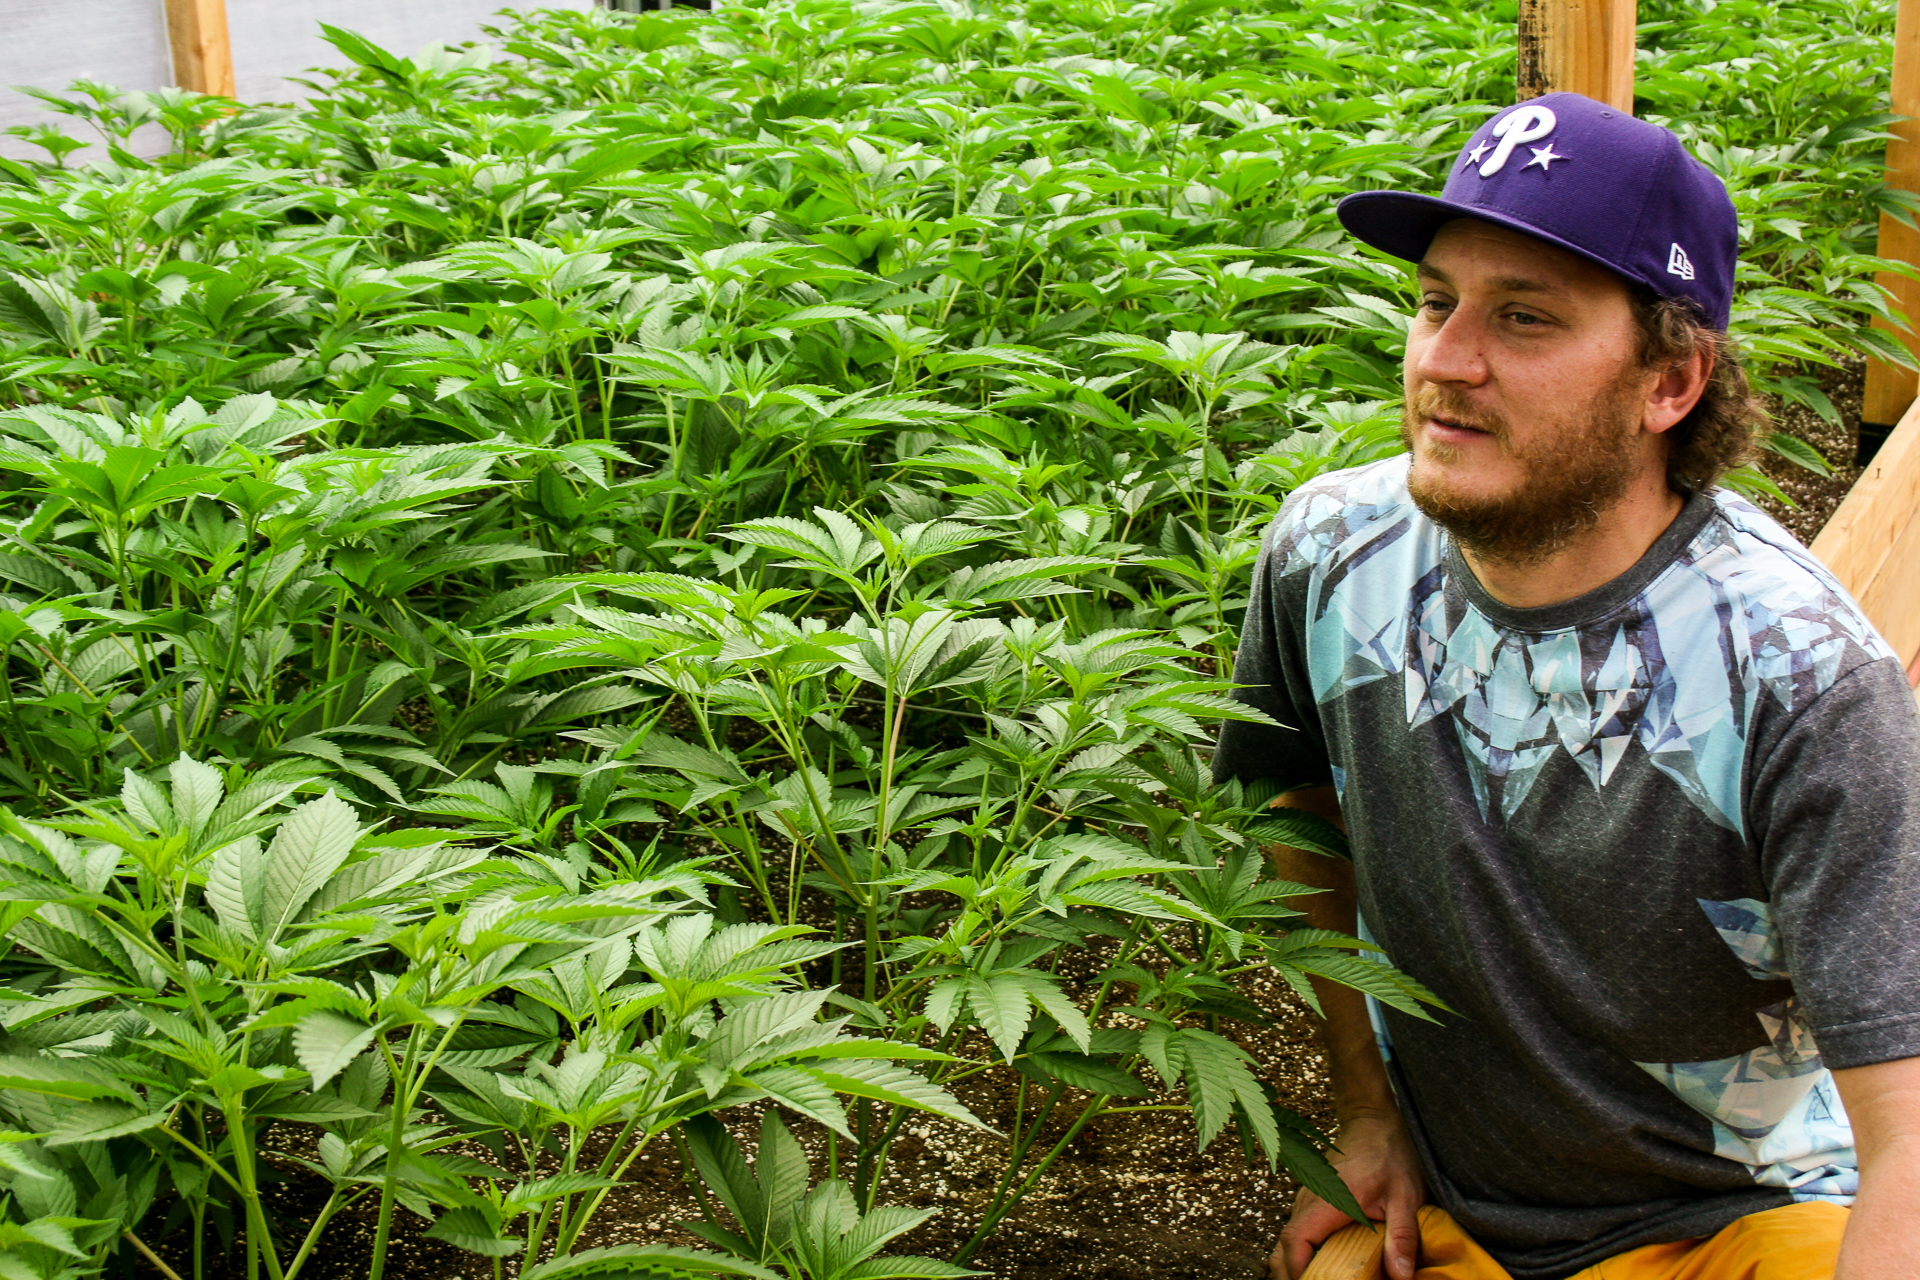 Stephen Gieder kneeling by cannabis plants